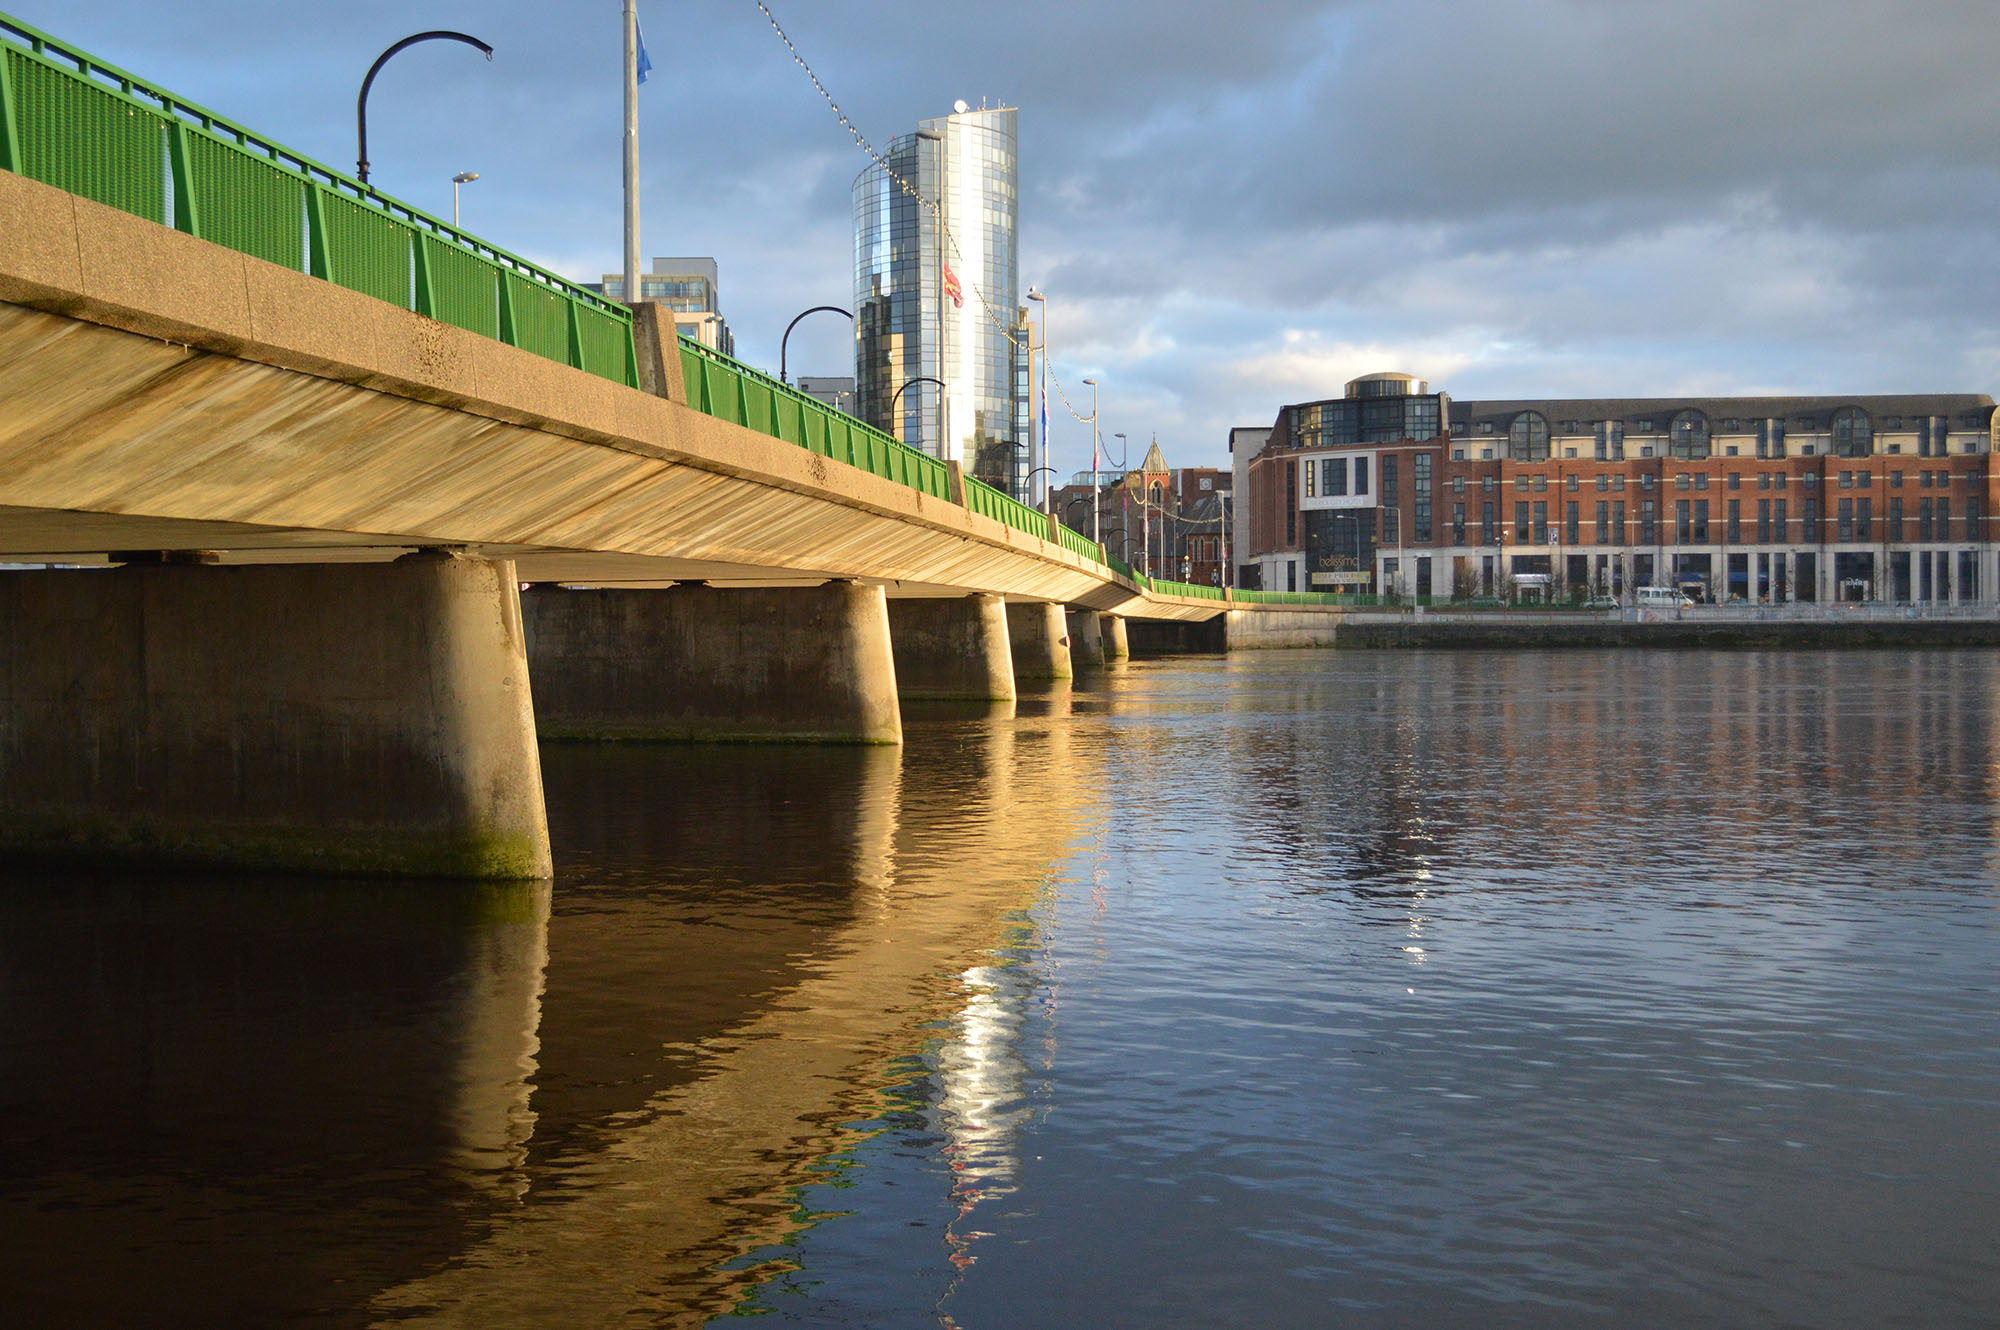 view of the shannon bridge running over the river shannon